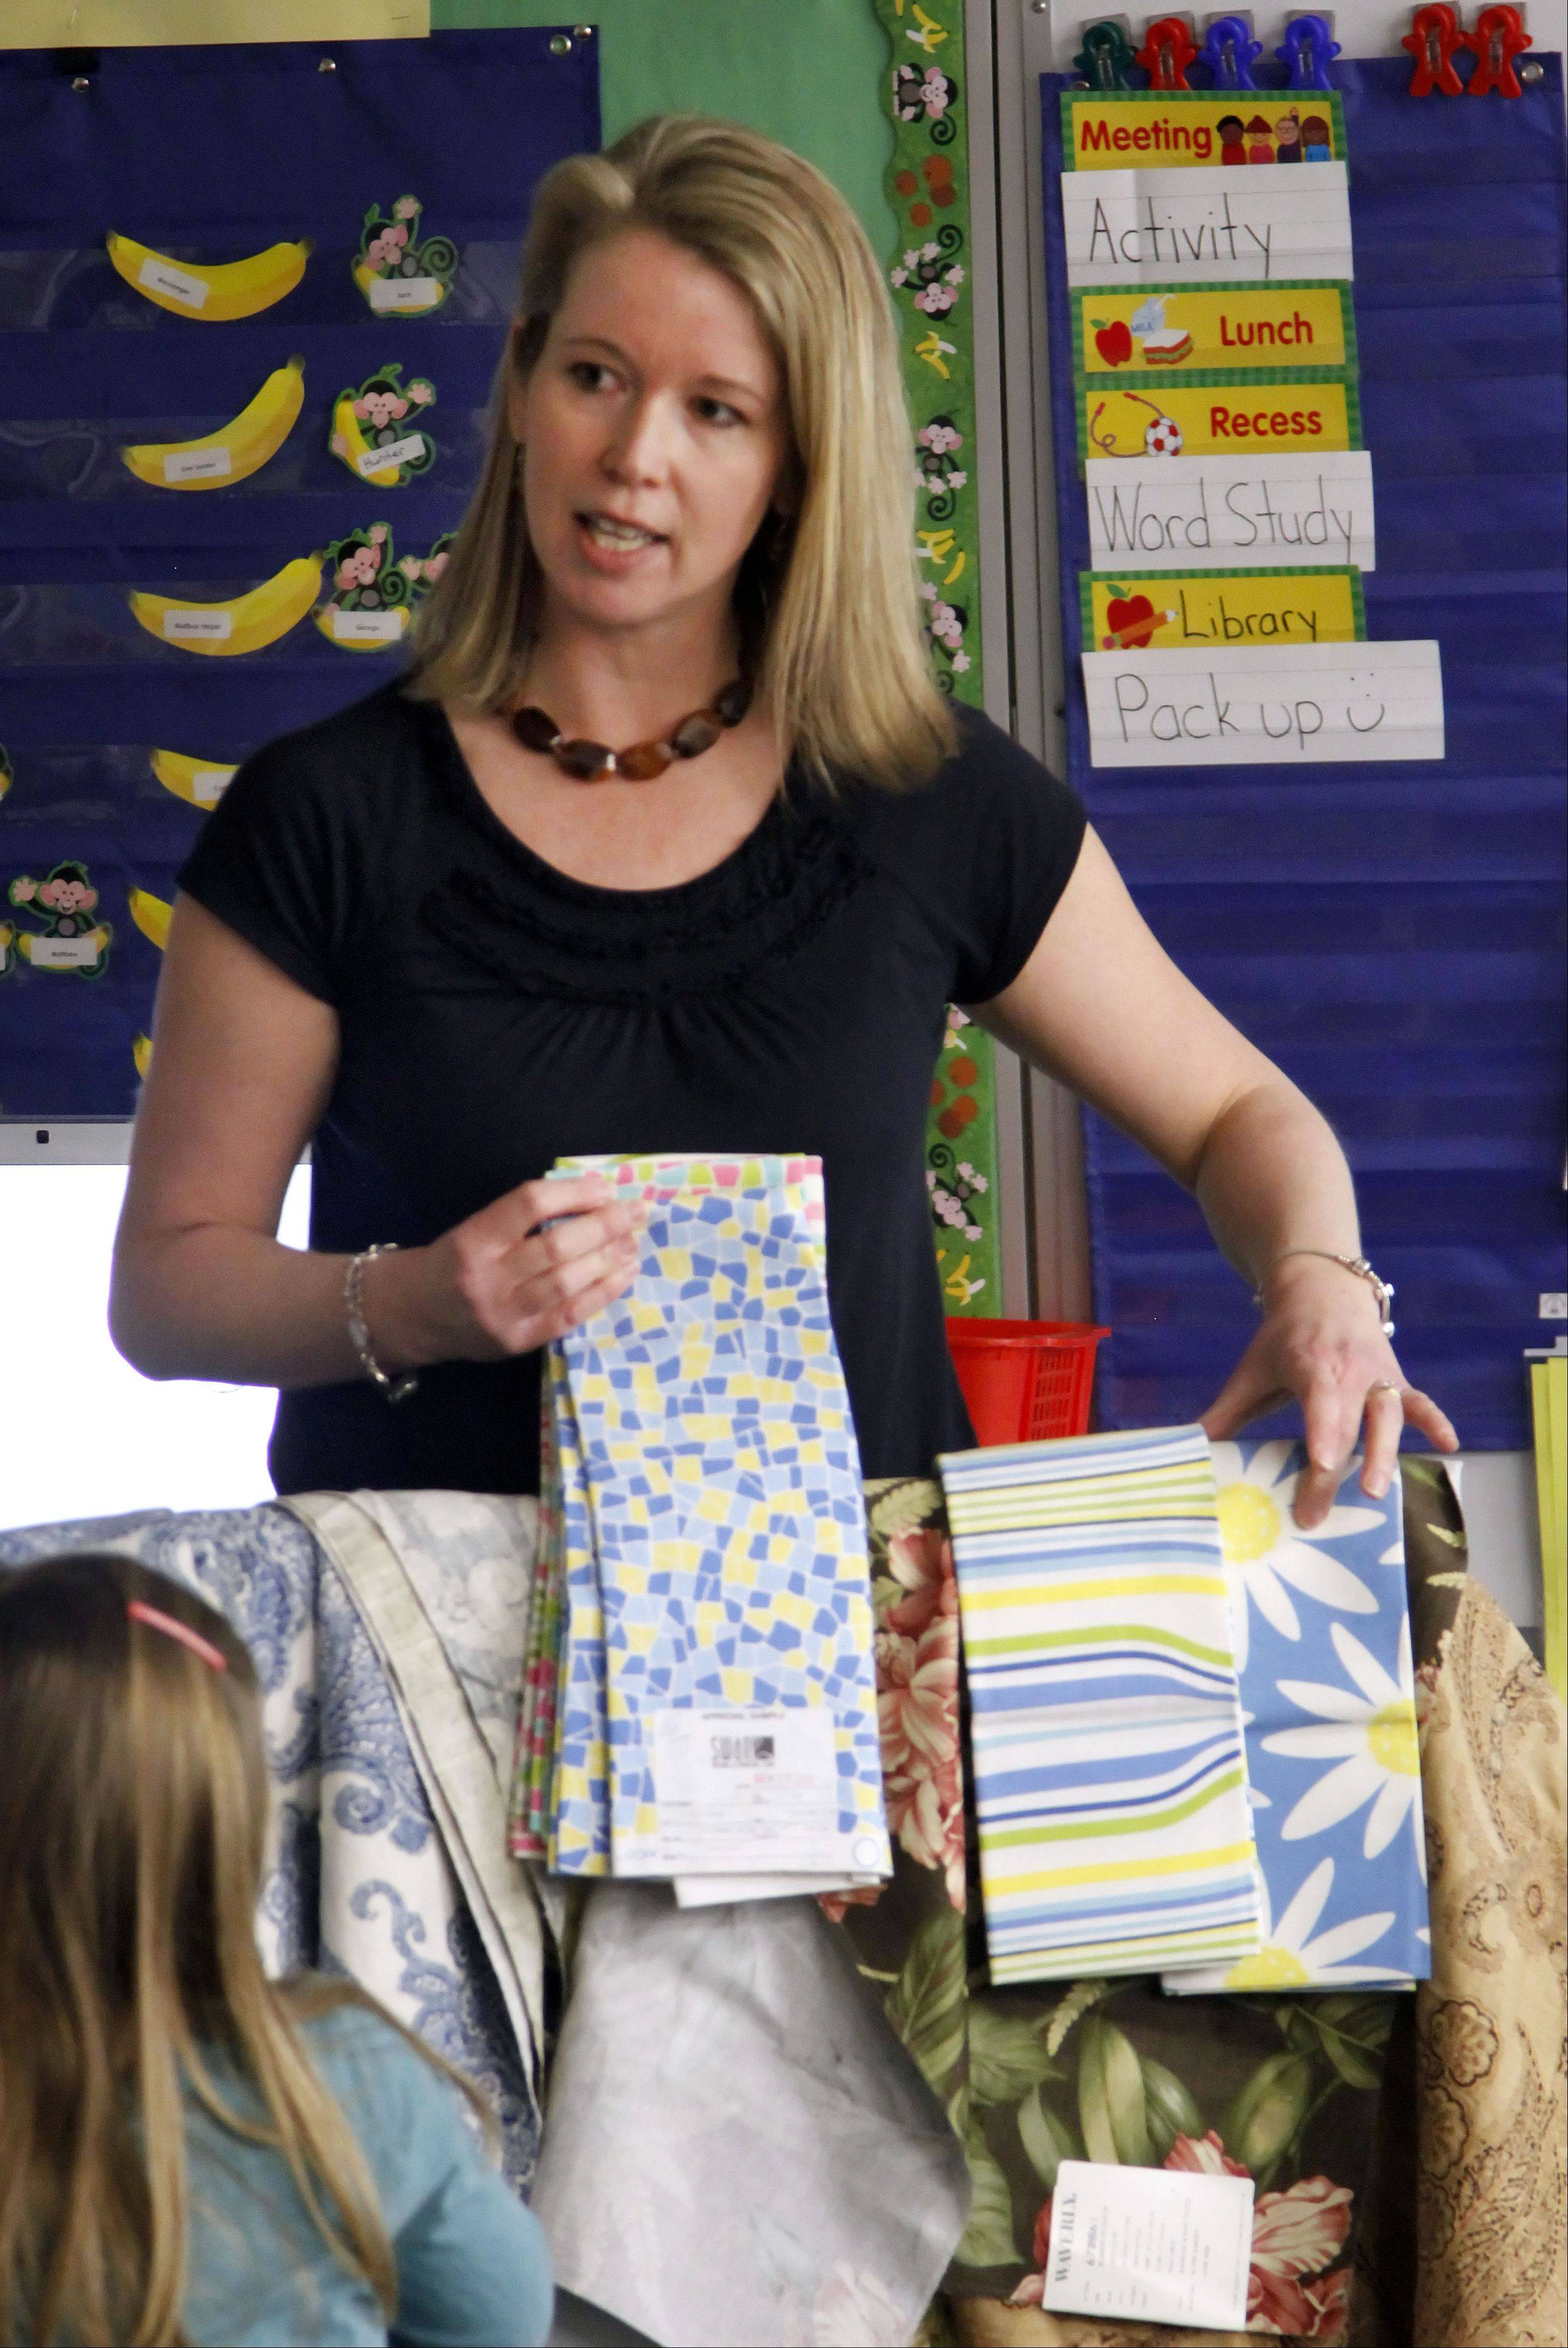 Textile designer Susan Krukonis of Libertyville shows examples of fabric designs during career day at Rockland School in Libertyville.